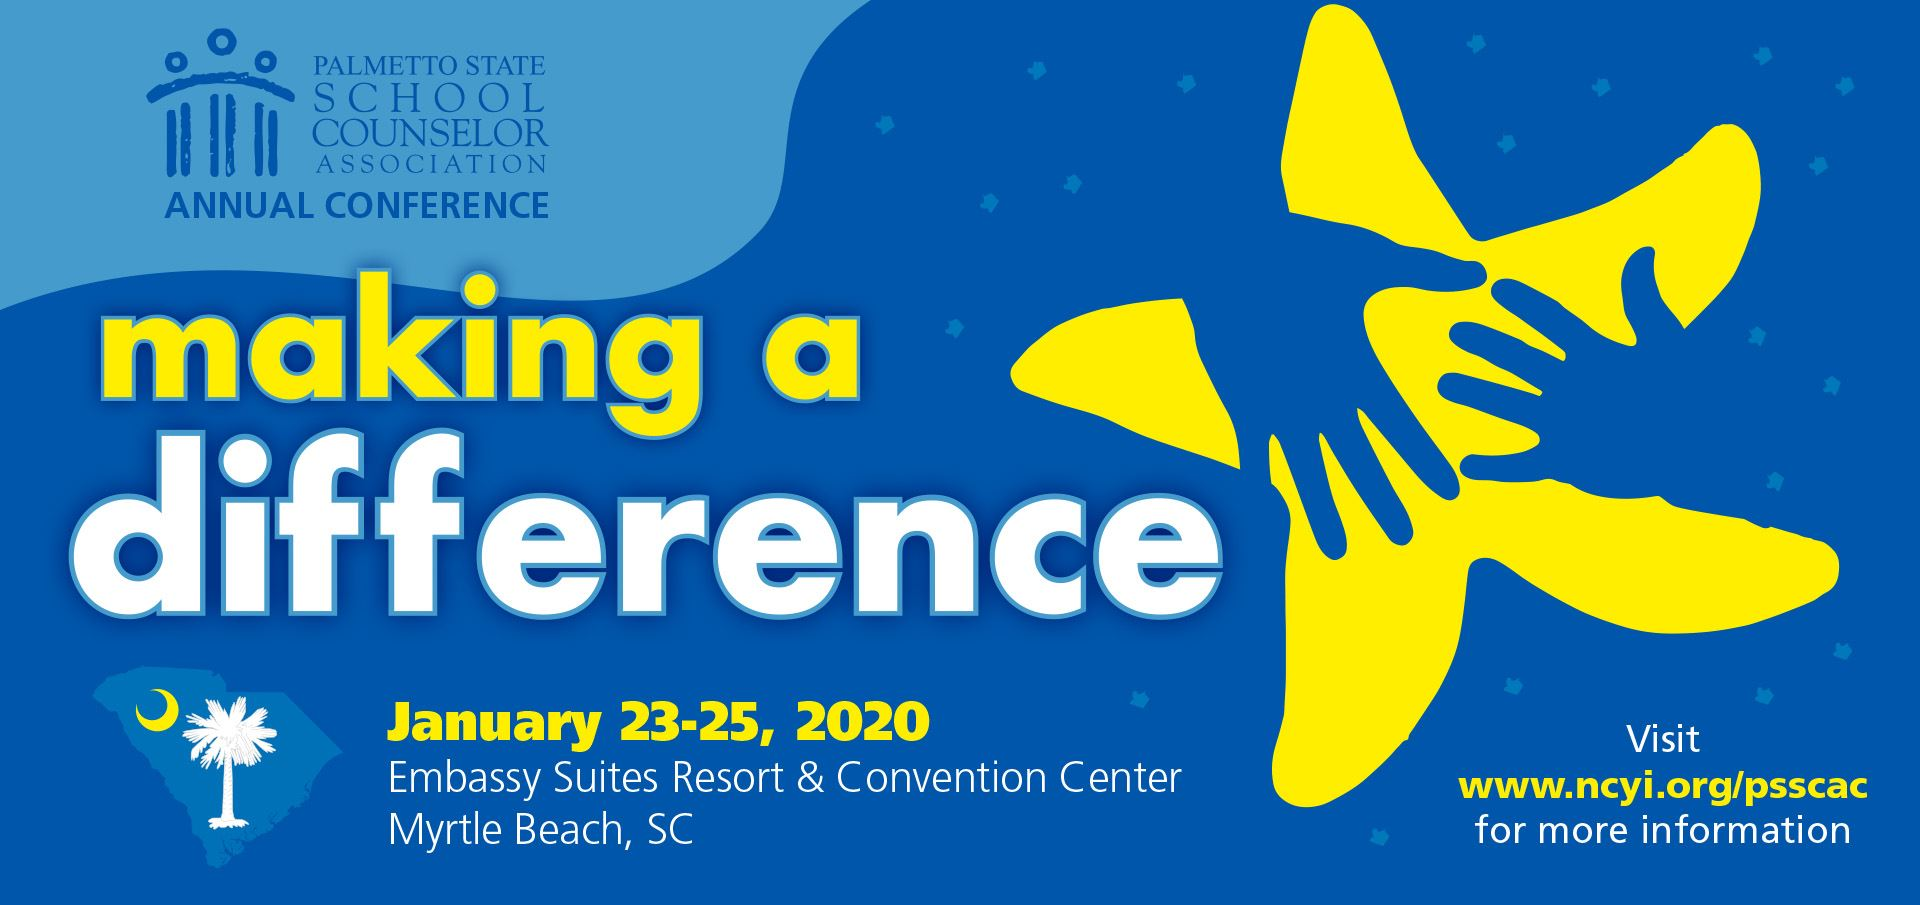 Palmetto State School Counselor Association - Conferences